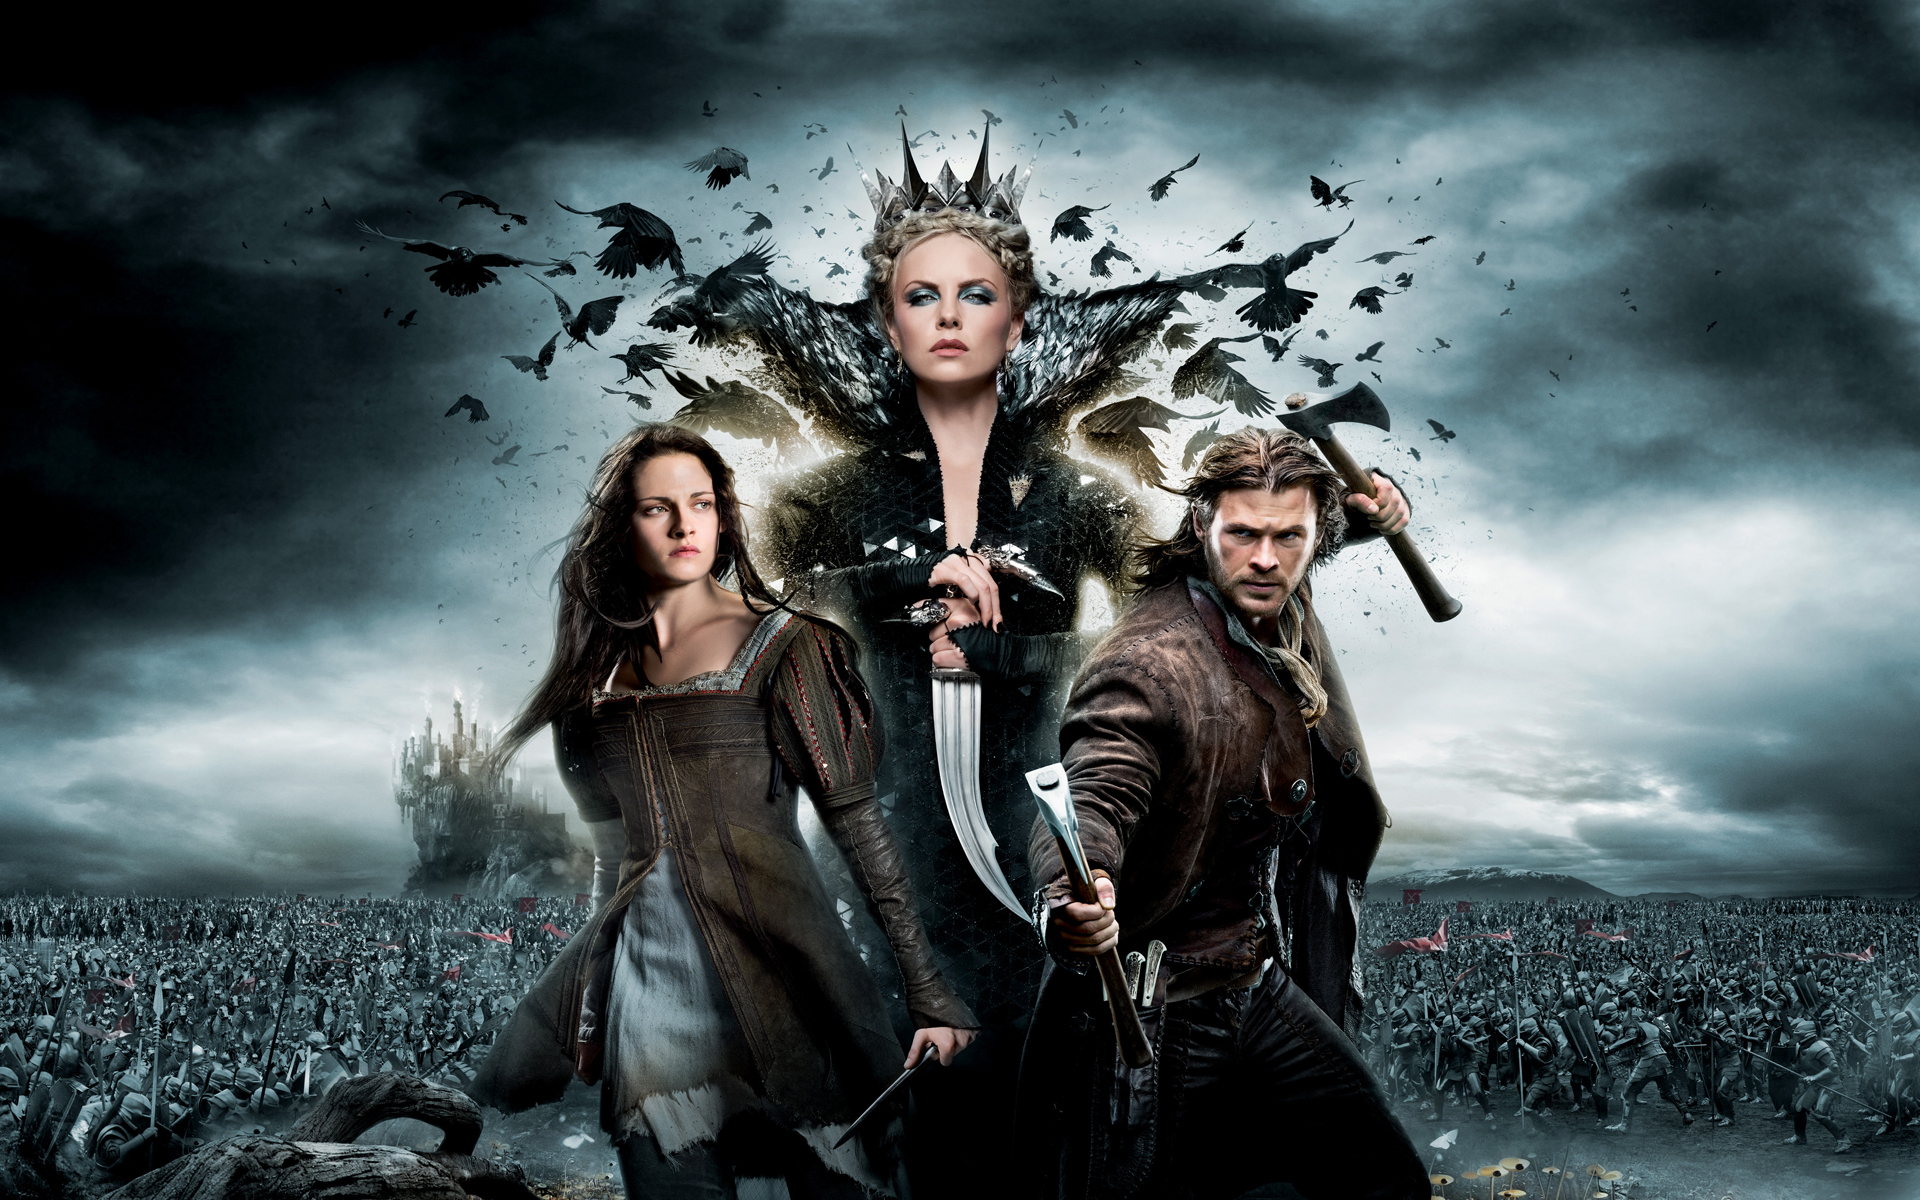 2012 Snow White & The Huntsman 3273.05 Kb